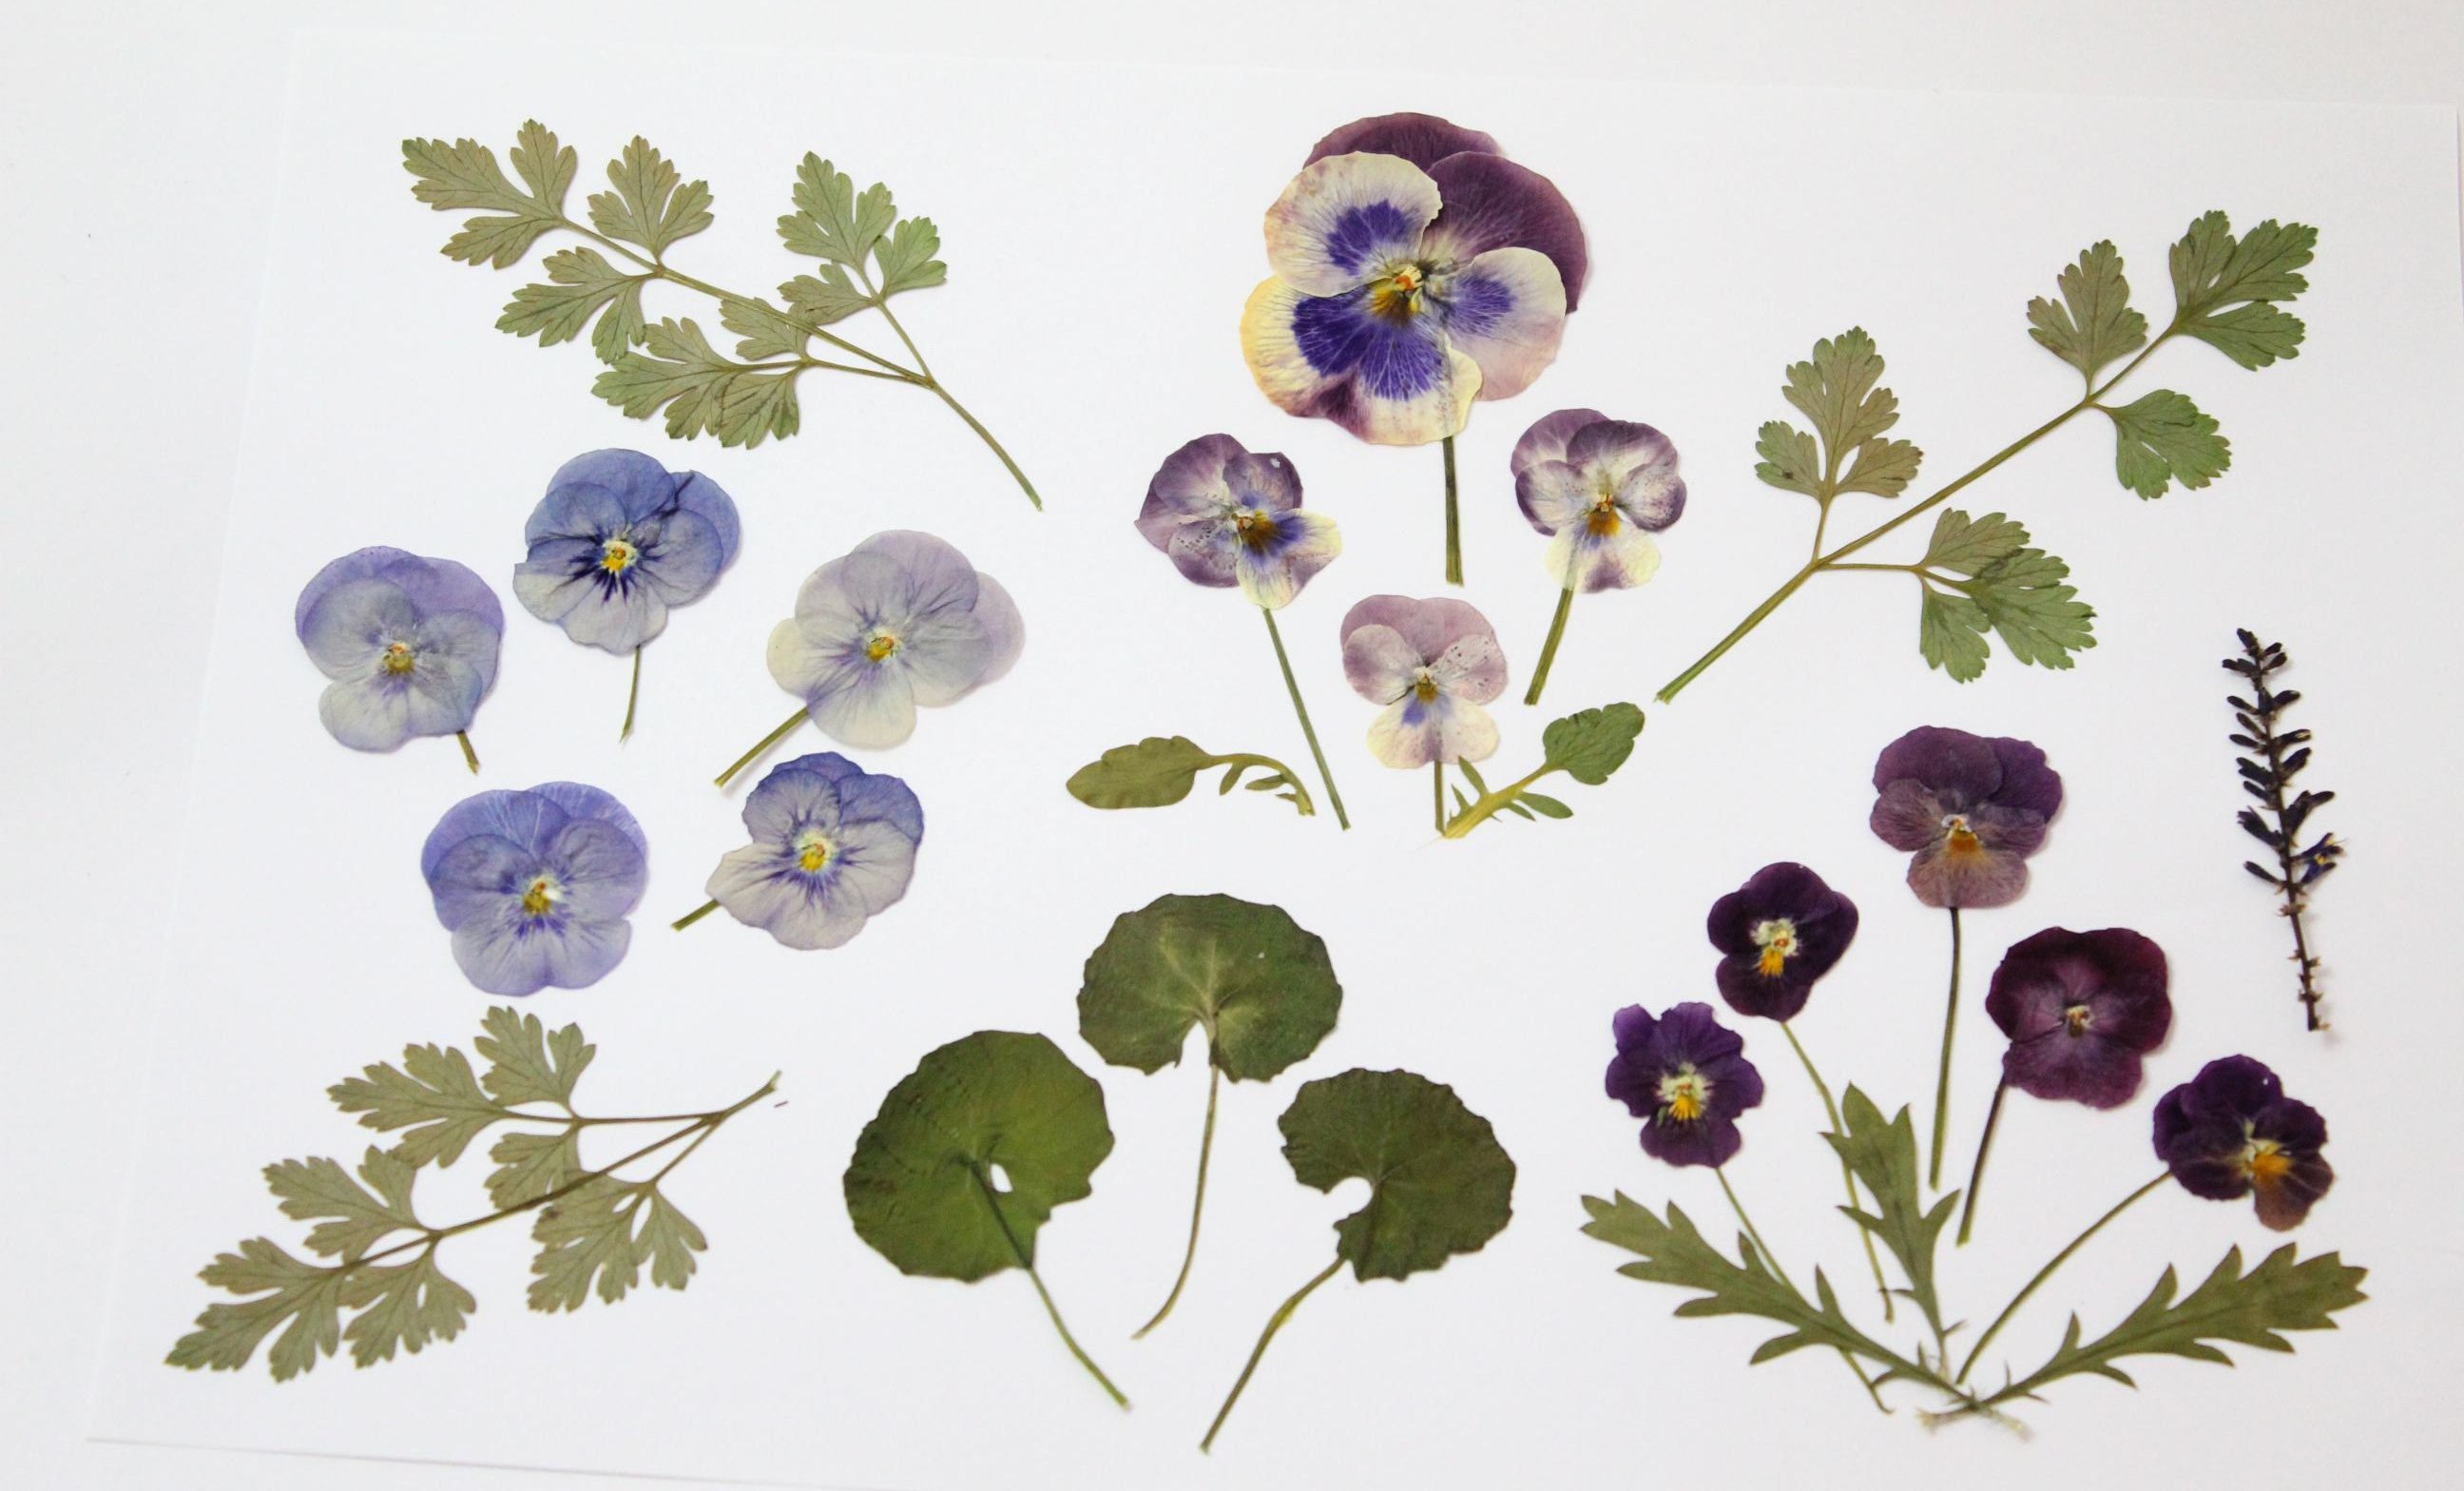 26pcs Mixed Dried Flowers And Pressed Leaves Maiden Hair Etsy In 2020 Flower Supplies Pansies Flowers Dried Flowers